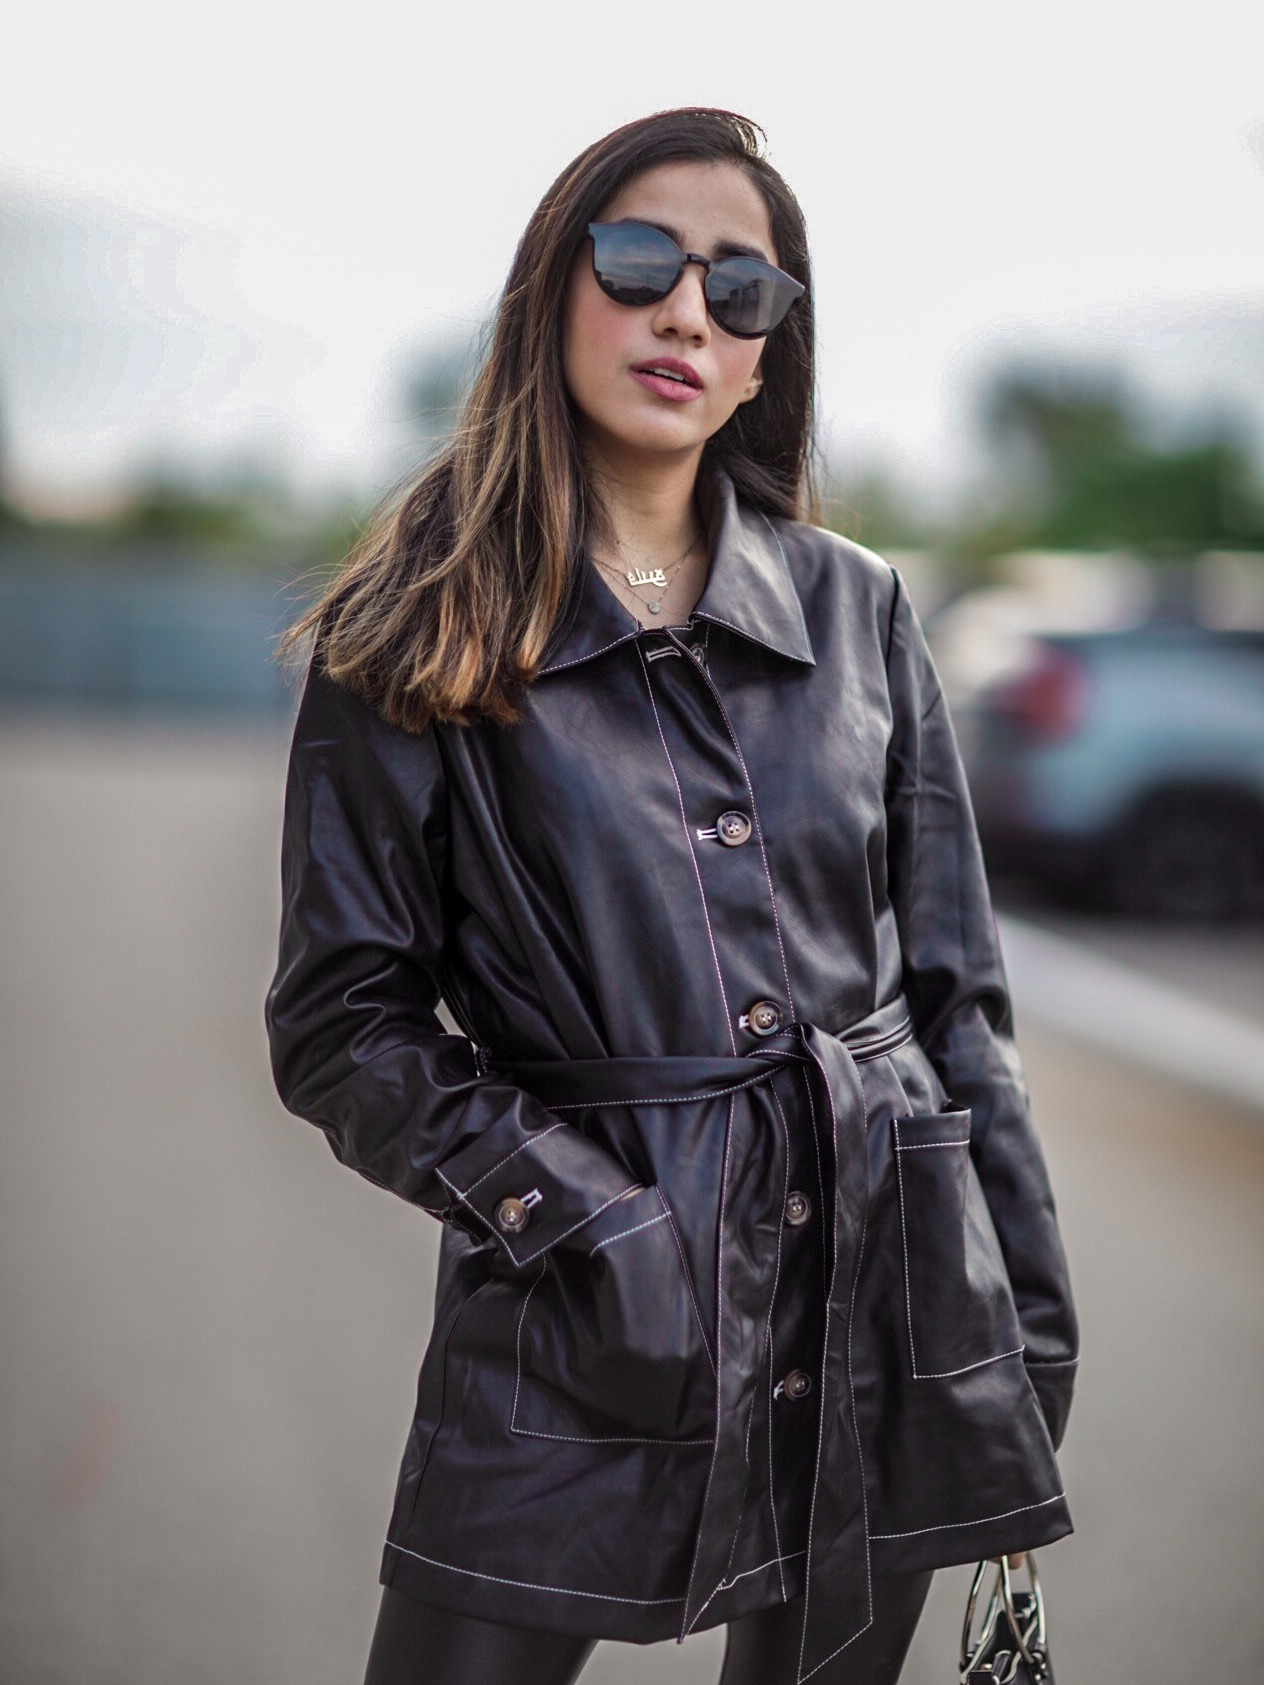 Trending Leather Pieces this Fall 2019 Top Pants Leggins Jackets Dresses trending Faiza Inam SincerelyHumble Blog 3